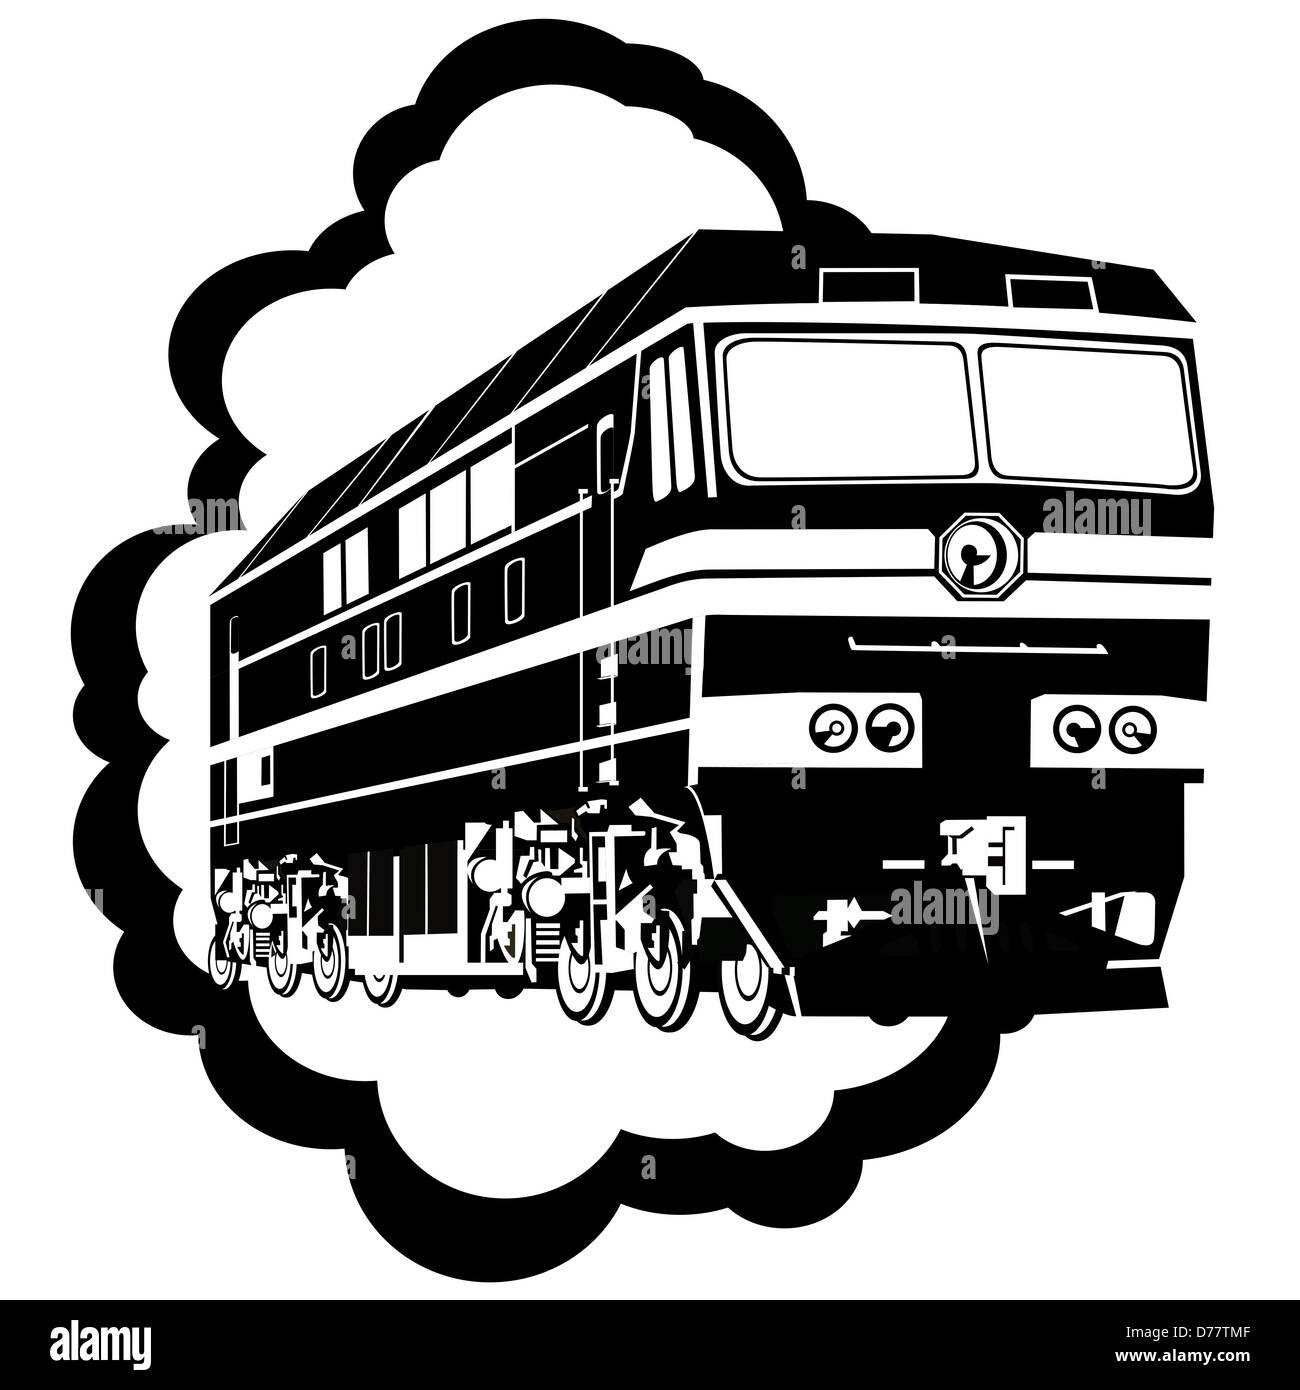 Abstract image of the locomotive. Illustration on white background. - Stock Image